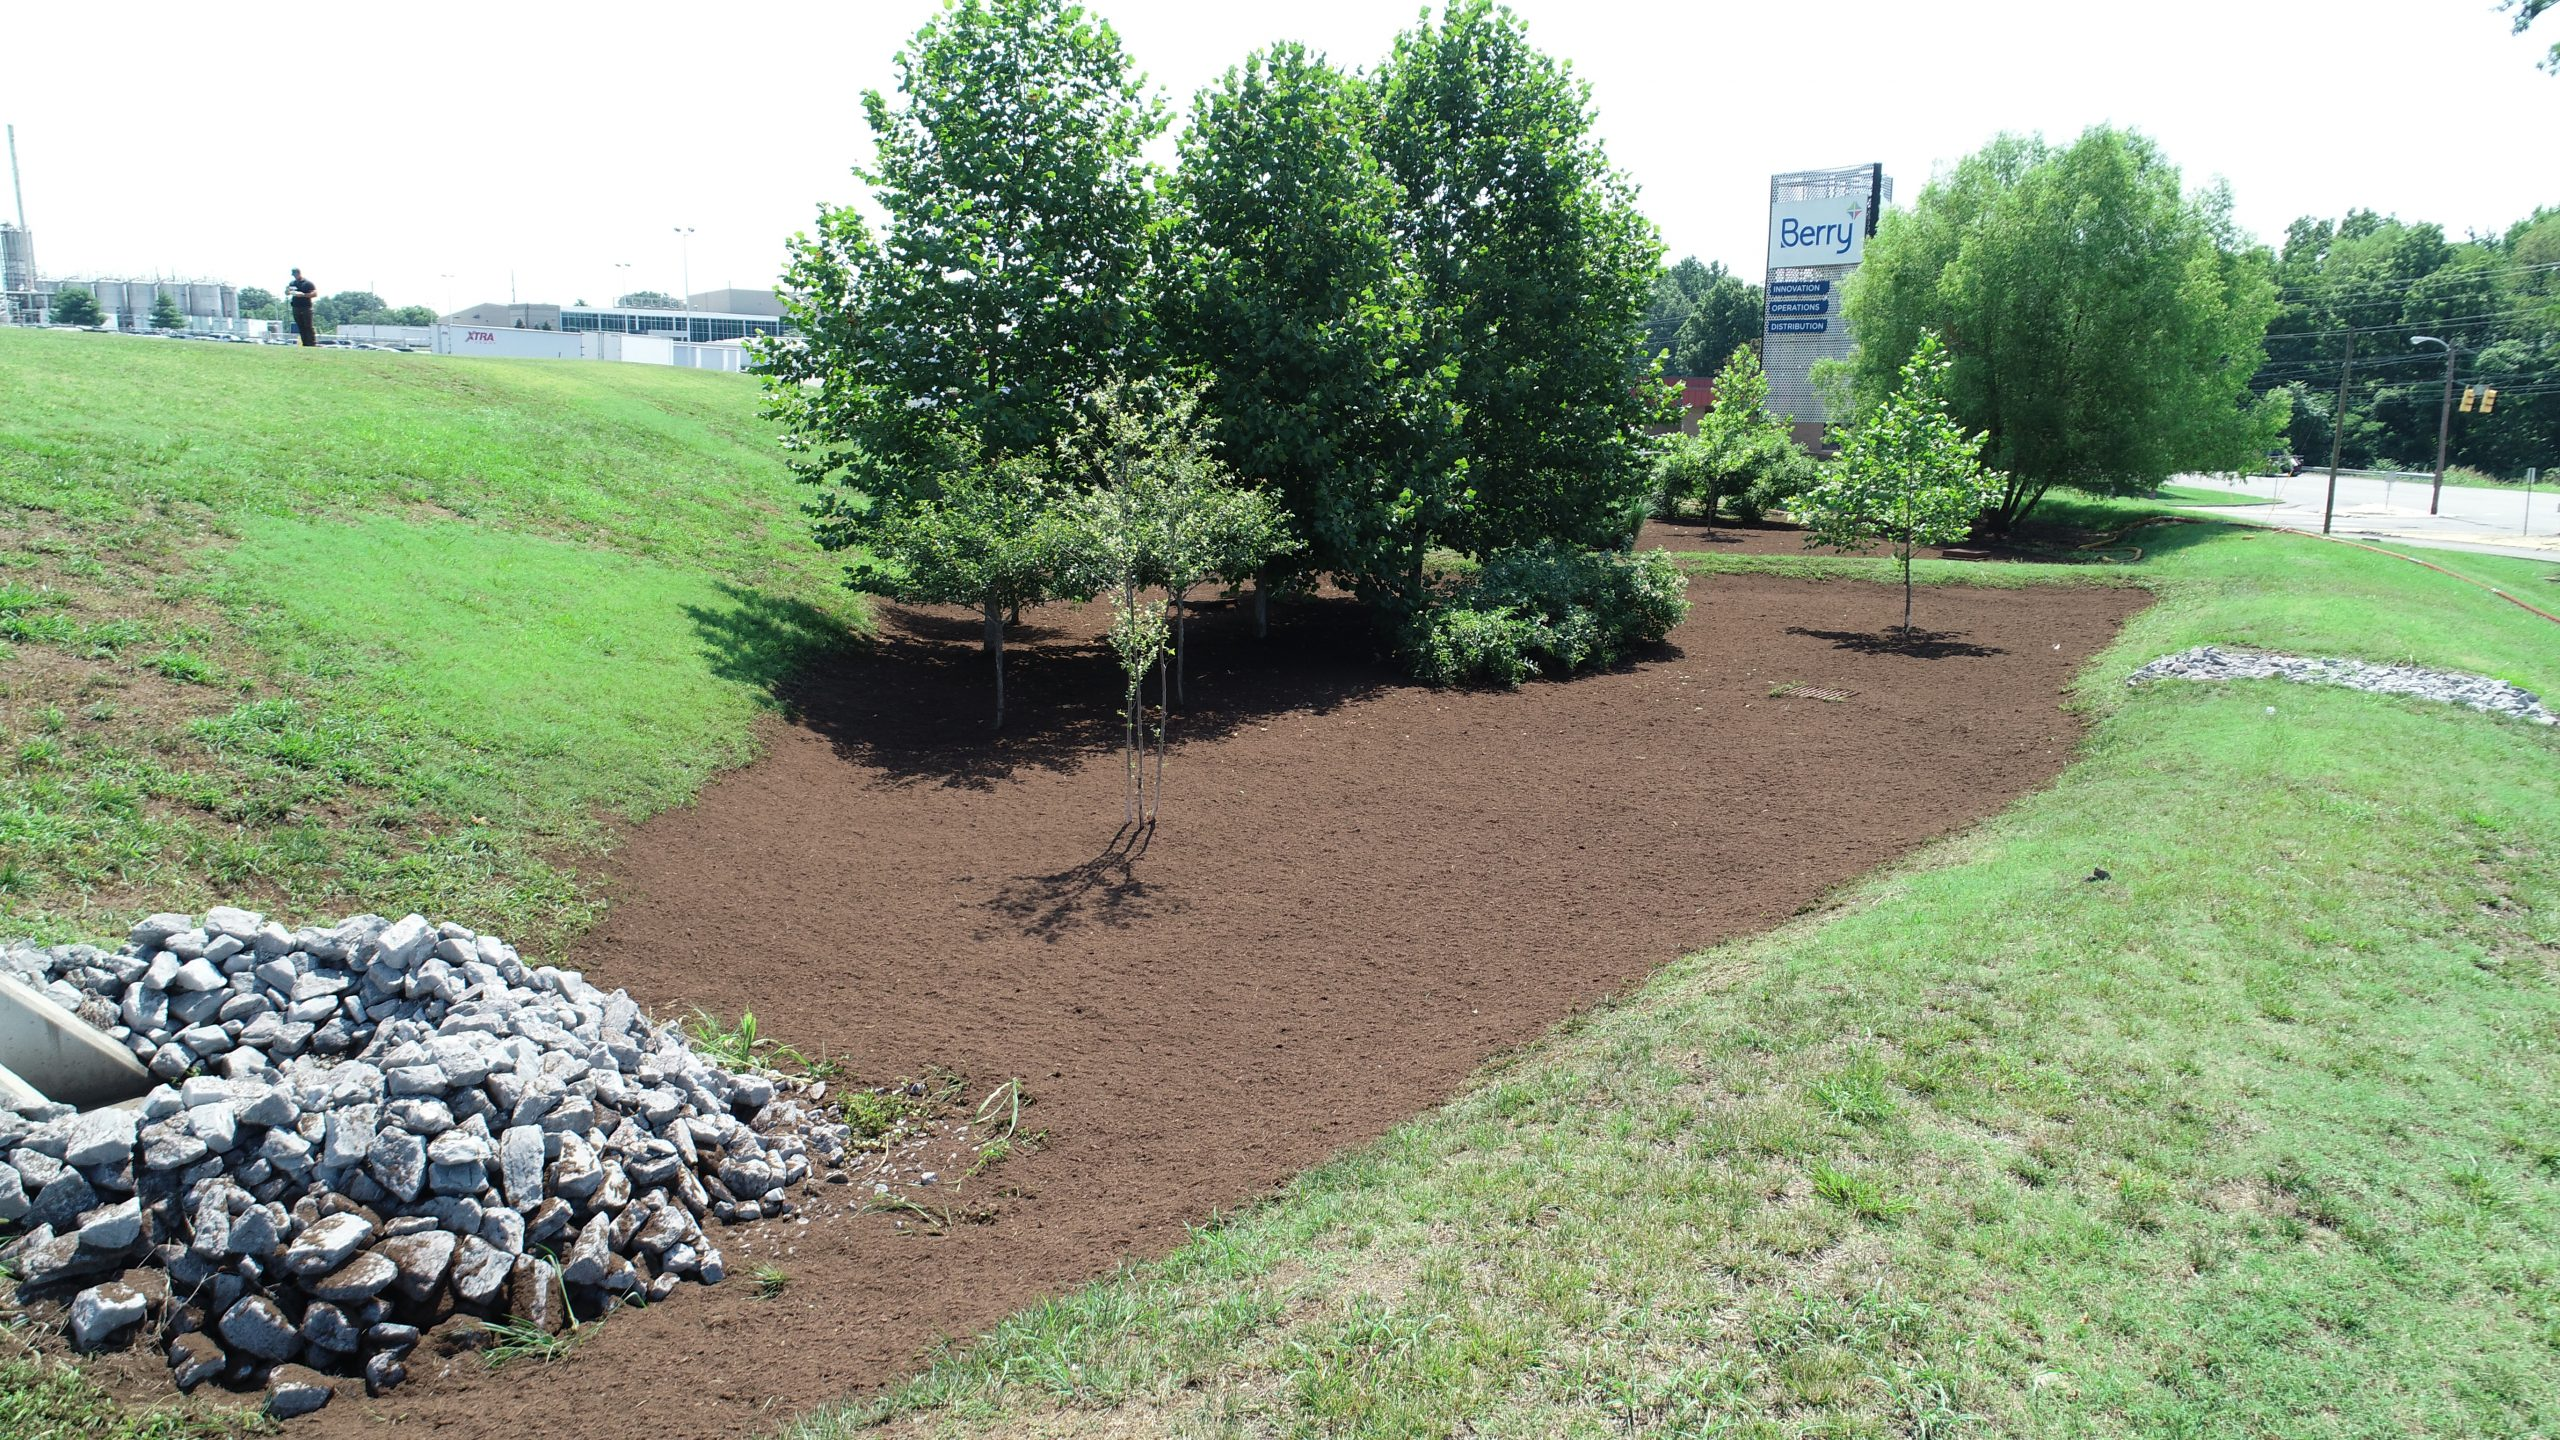 Beautiful view of Northstar's Bioretention Systems, Land Clearing Services and Stormwater BMP Nashville TN